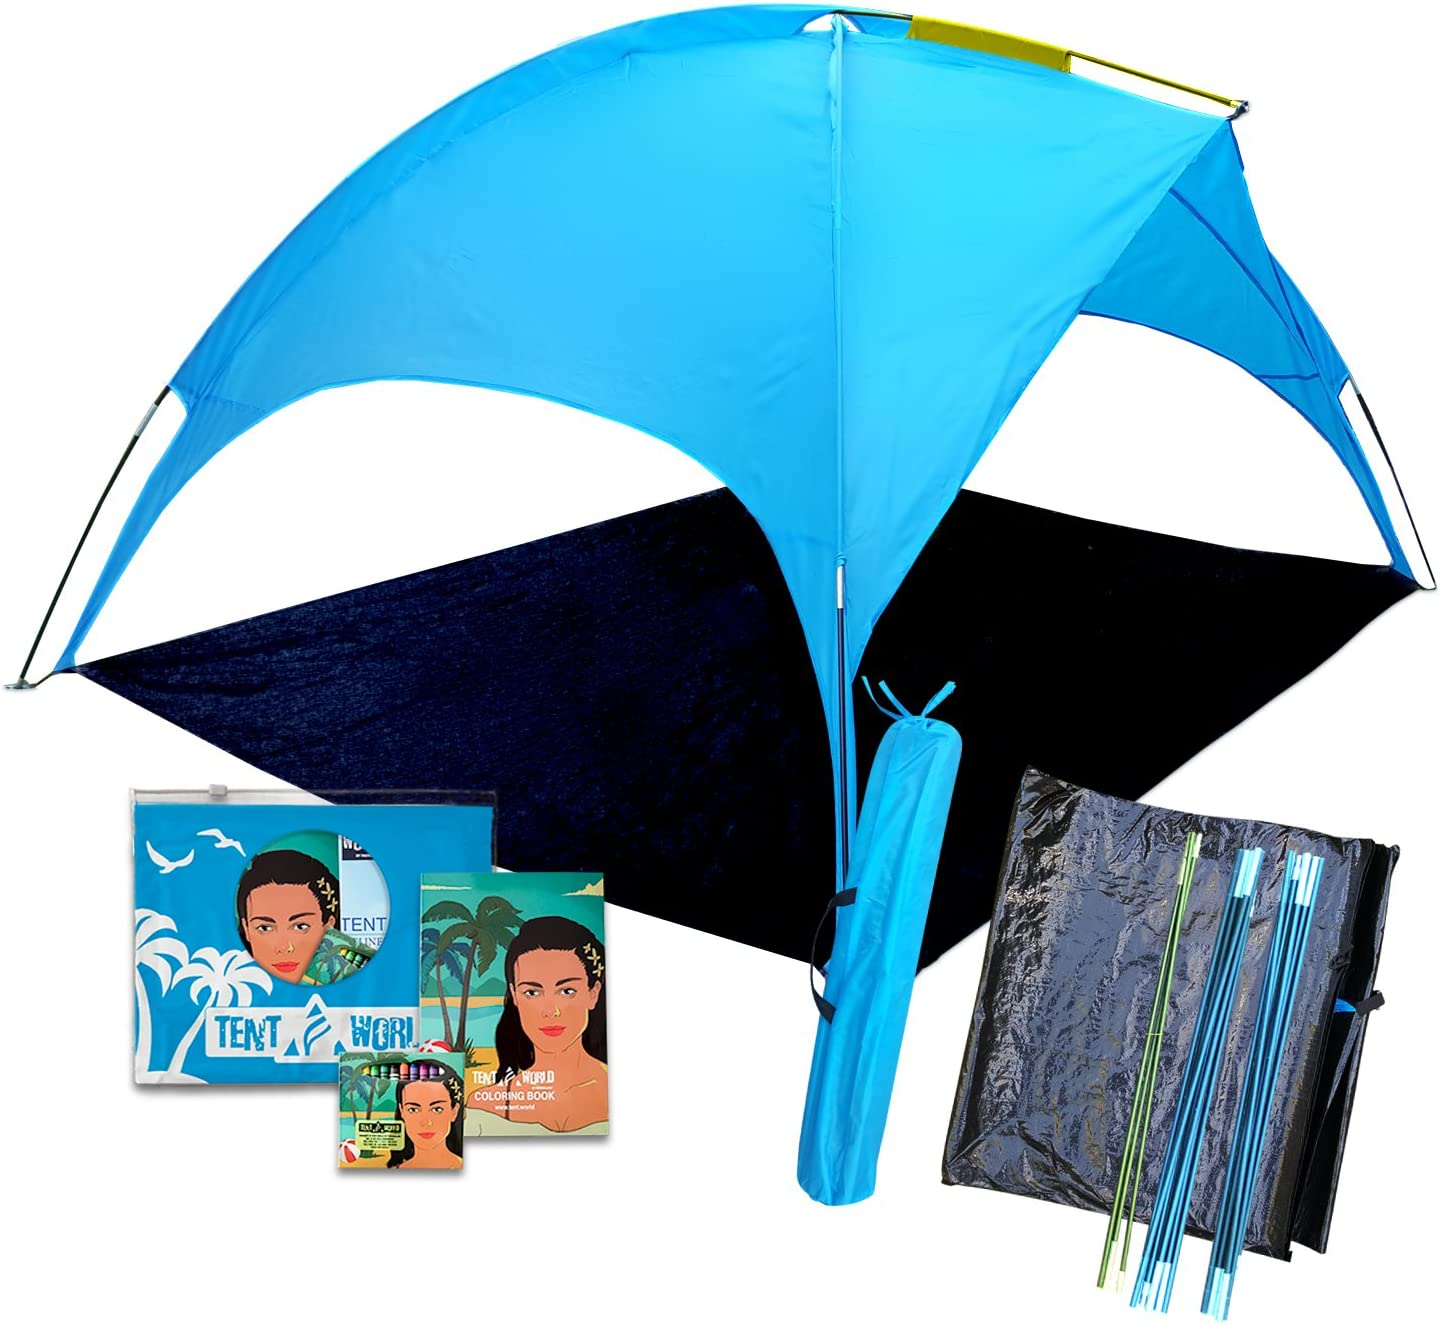 Beach Tent canopy Saturn shades better than umbrella 4 people Shade shack, easy up sports cabana, waterproof rain Sun shelter for kids adults, outdoor UV protection sunshade for sporting events